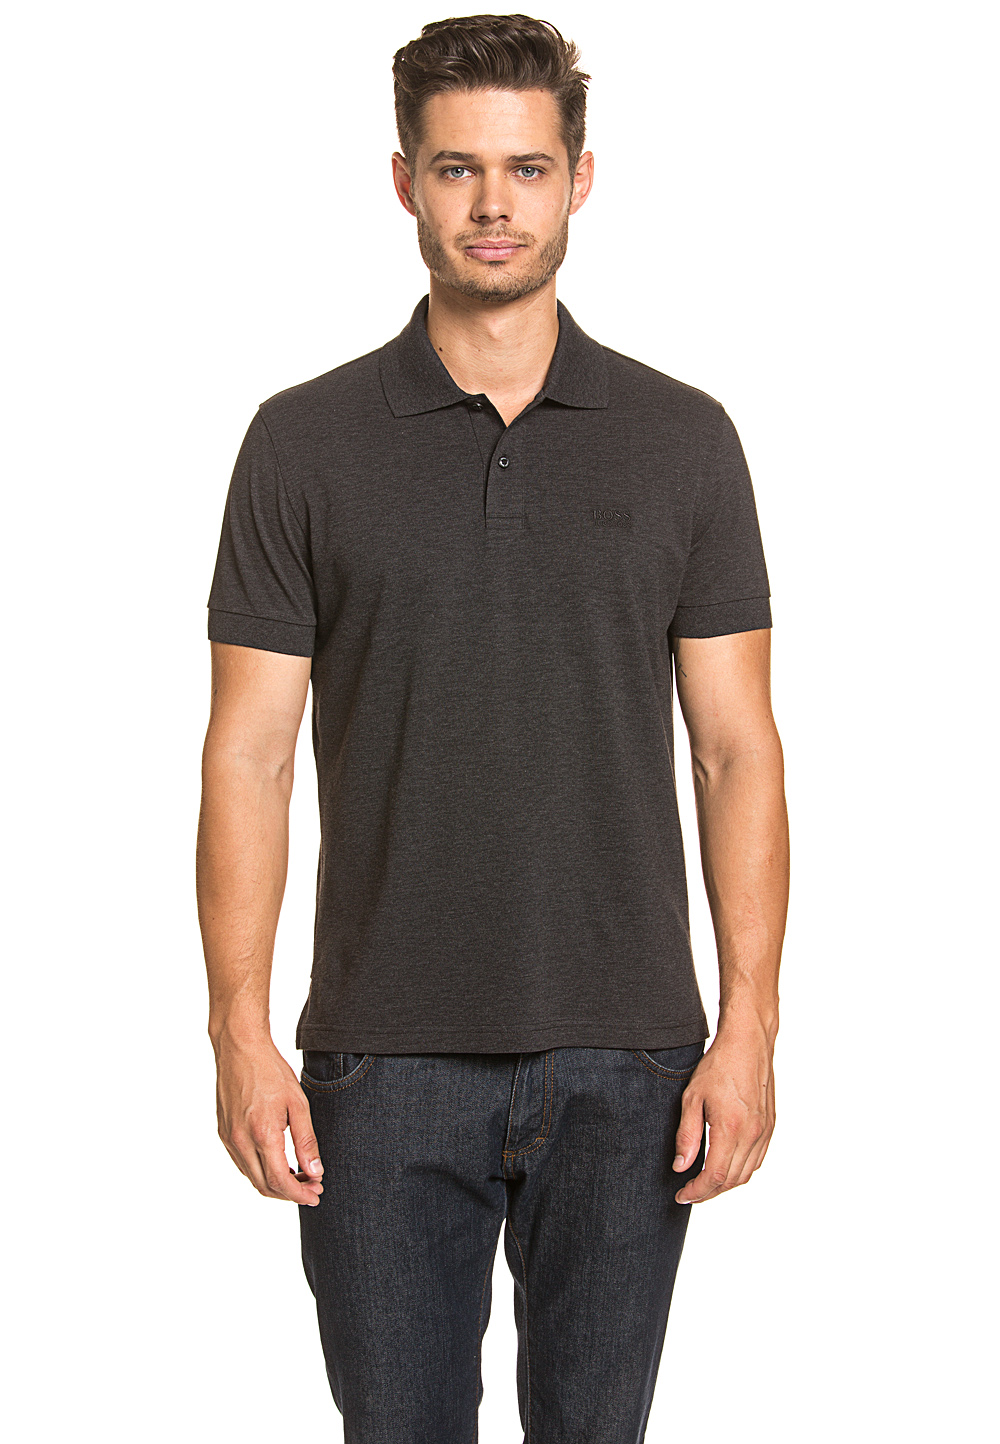 Boss Green Polo-Shirt Firenze, Modern Fit schwarz | Bekleidung > Polo Shirts > Kurzarm | Schwarz | Boss Green